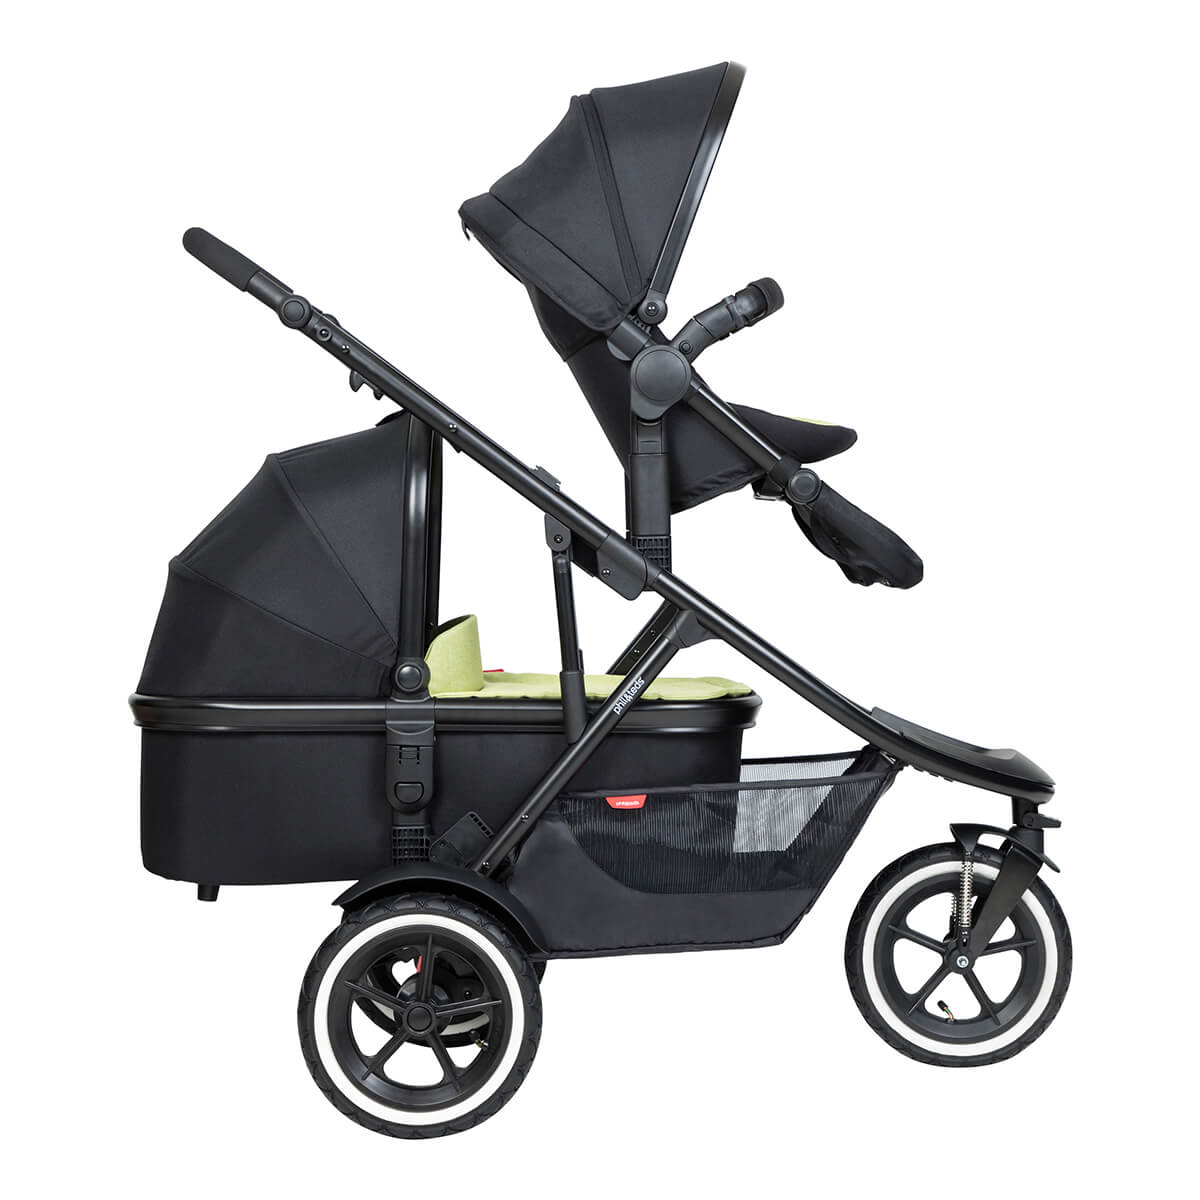 https://cdn.accentuate.io/4509527539800/19272668282968/philteds-sport-buggy-with-double-kit-extended-clip-and-snug-carrycot-side-view-v1626484359463.jpg?1200x1200